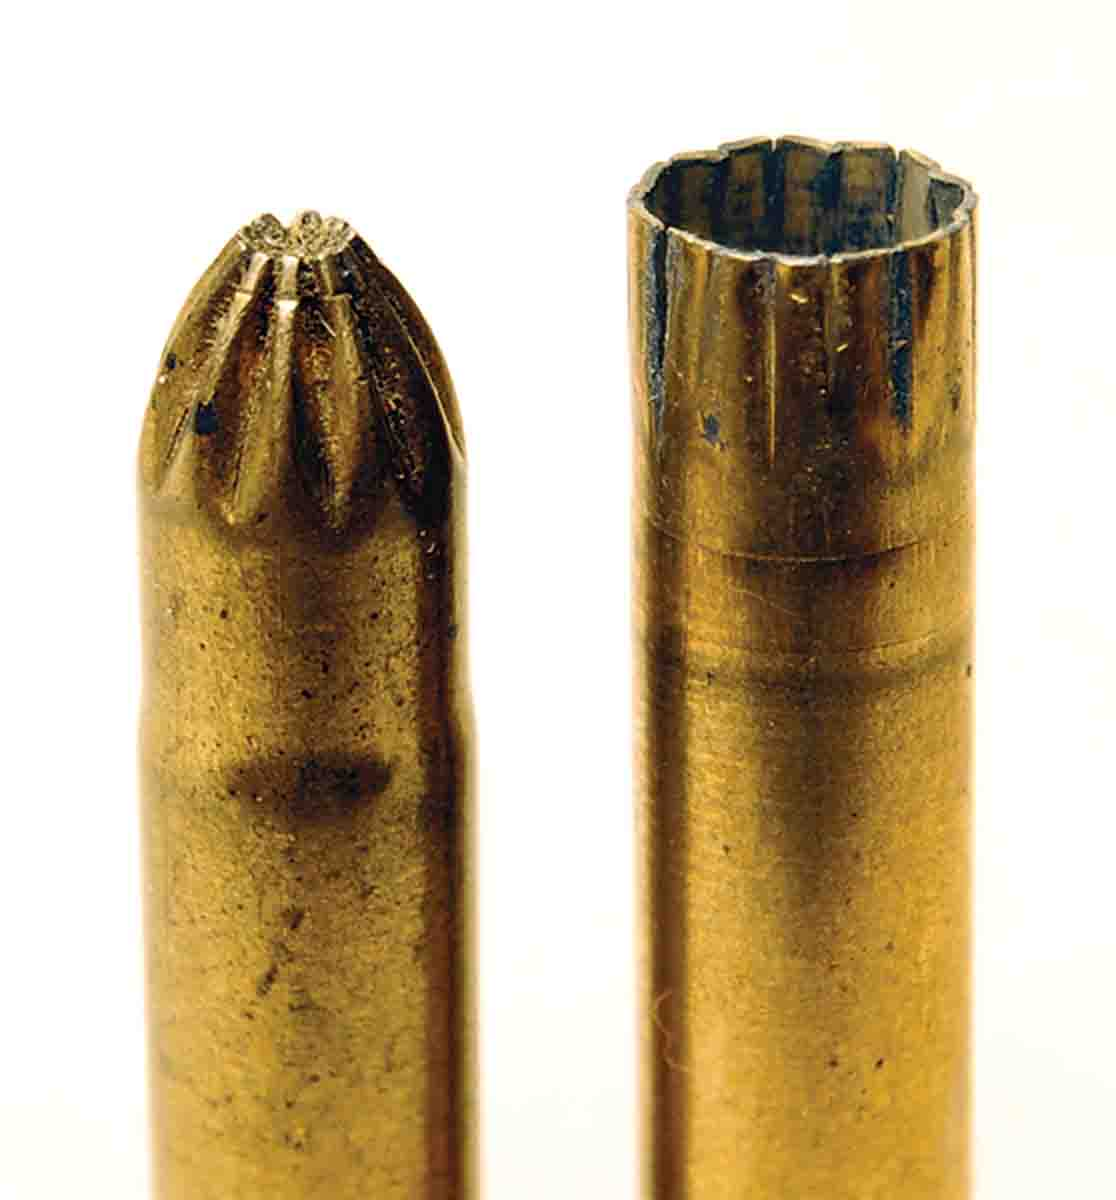 A close-up of a modern rose crimp and a fired shot cartridge, which shows that the crimp does open fully to release shot.